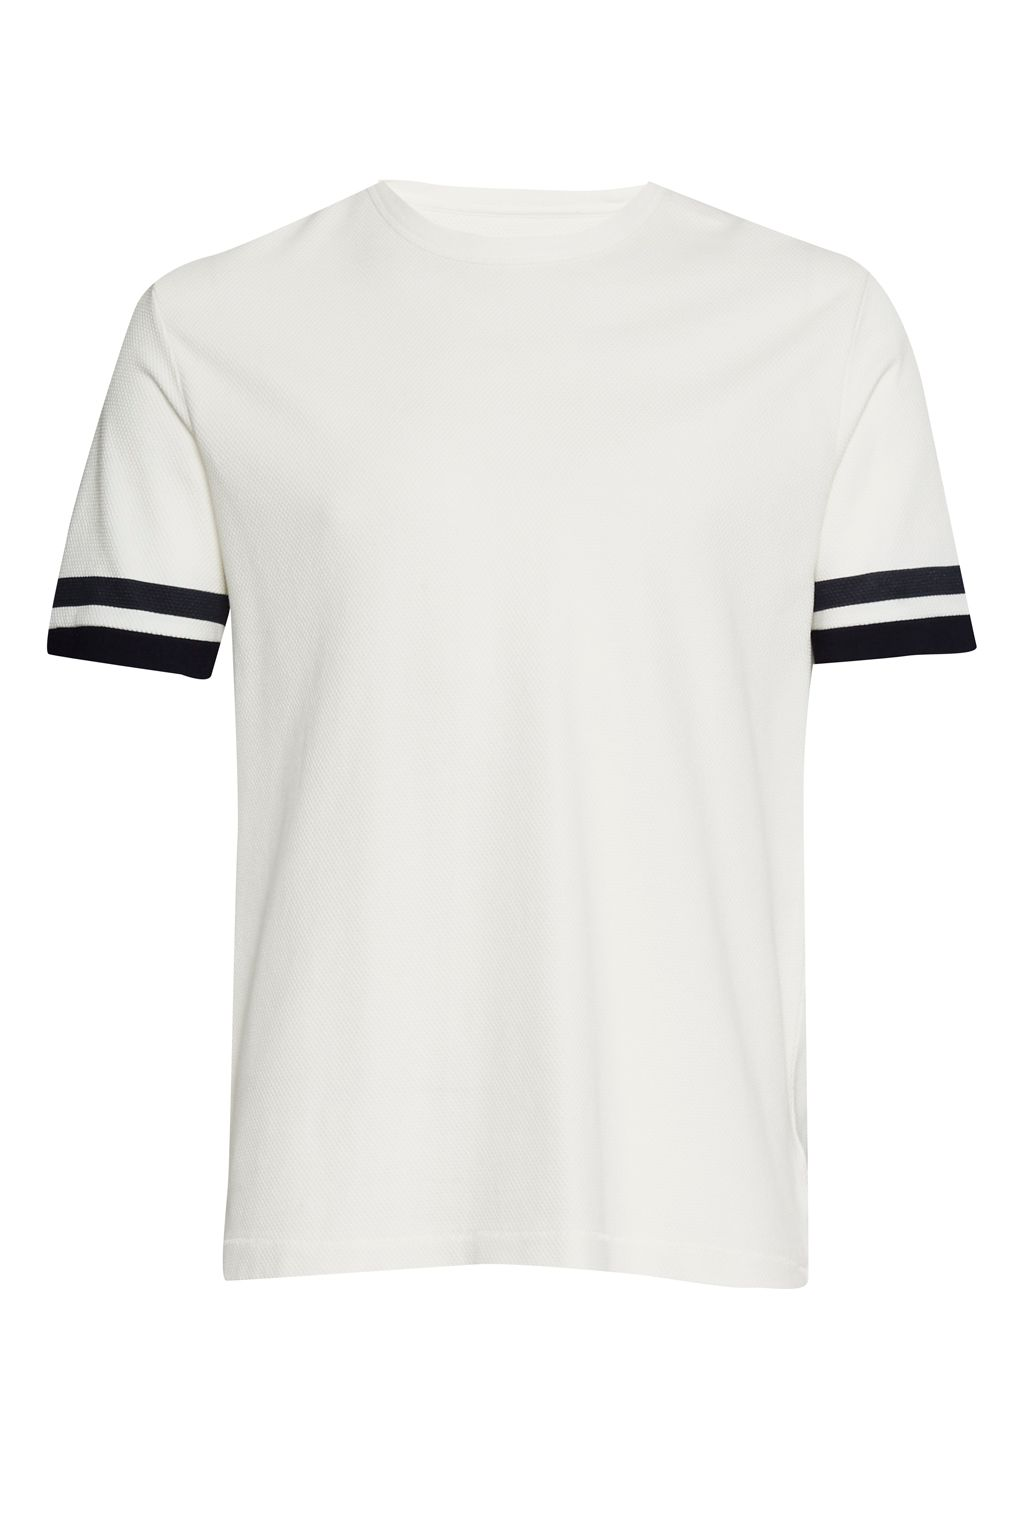 Men's French Connection Ampthill Pique Sleeve Tipping T-Shirt, Cream